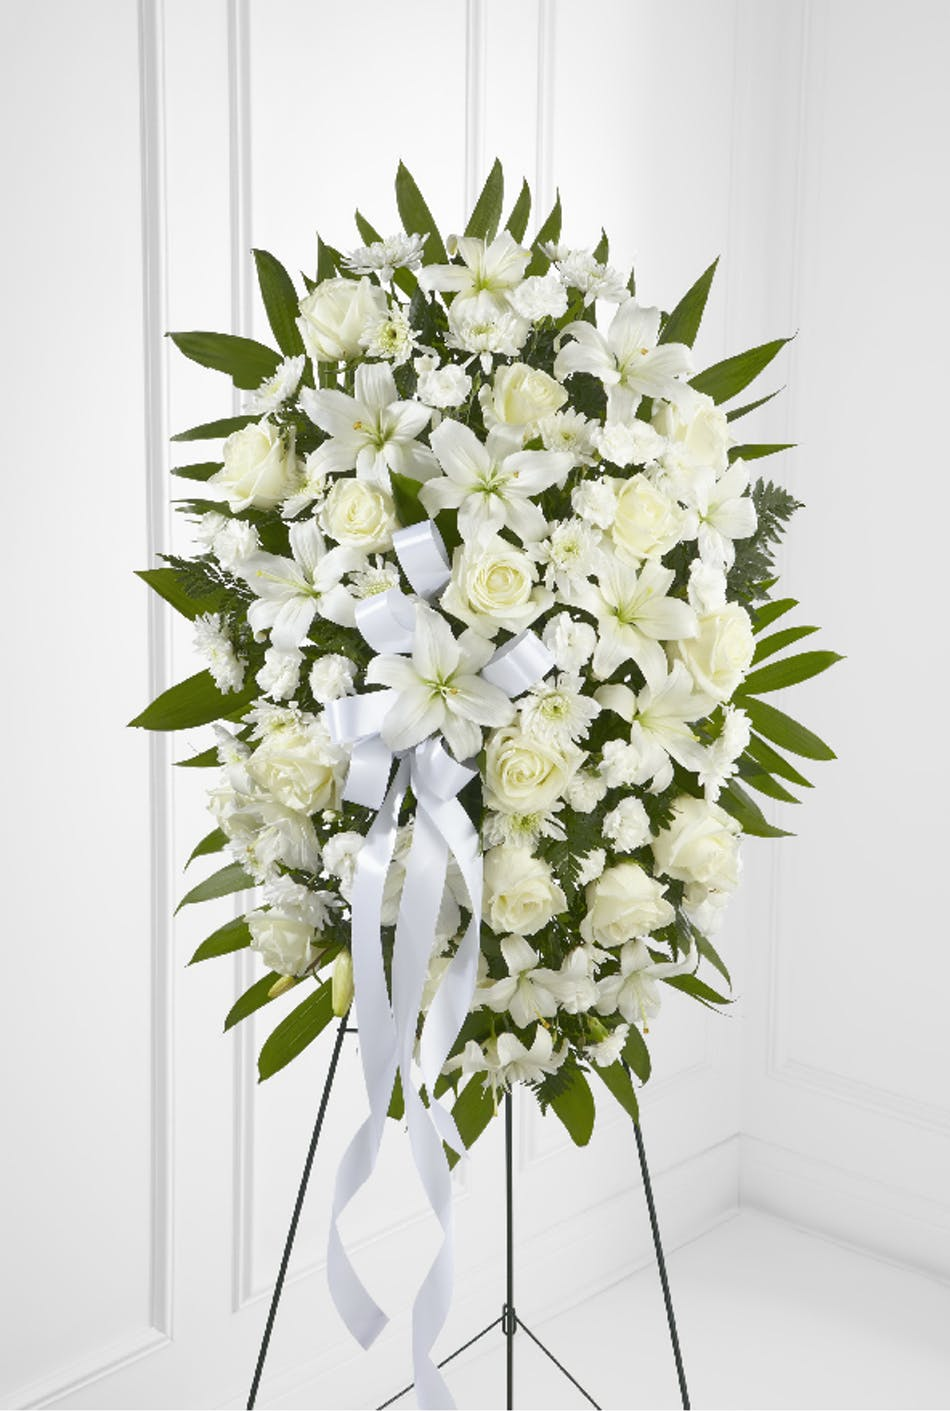 Dear thoughts spray rowland heights funeral flowers white roses and other flowers and greenery in a funeral spray arrangement izmirmasajfo